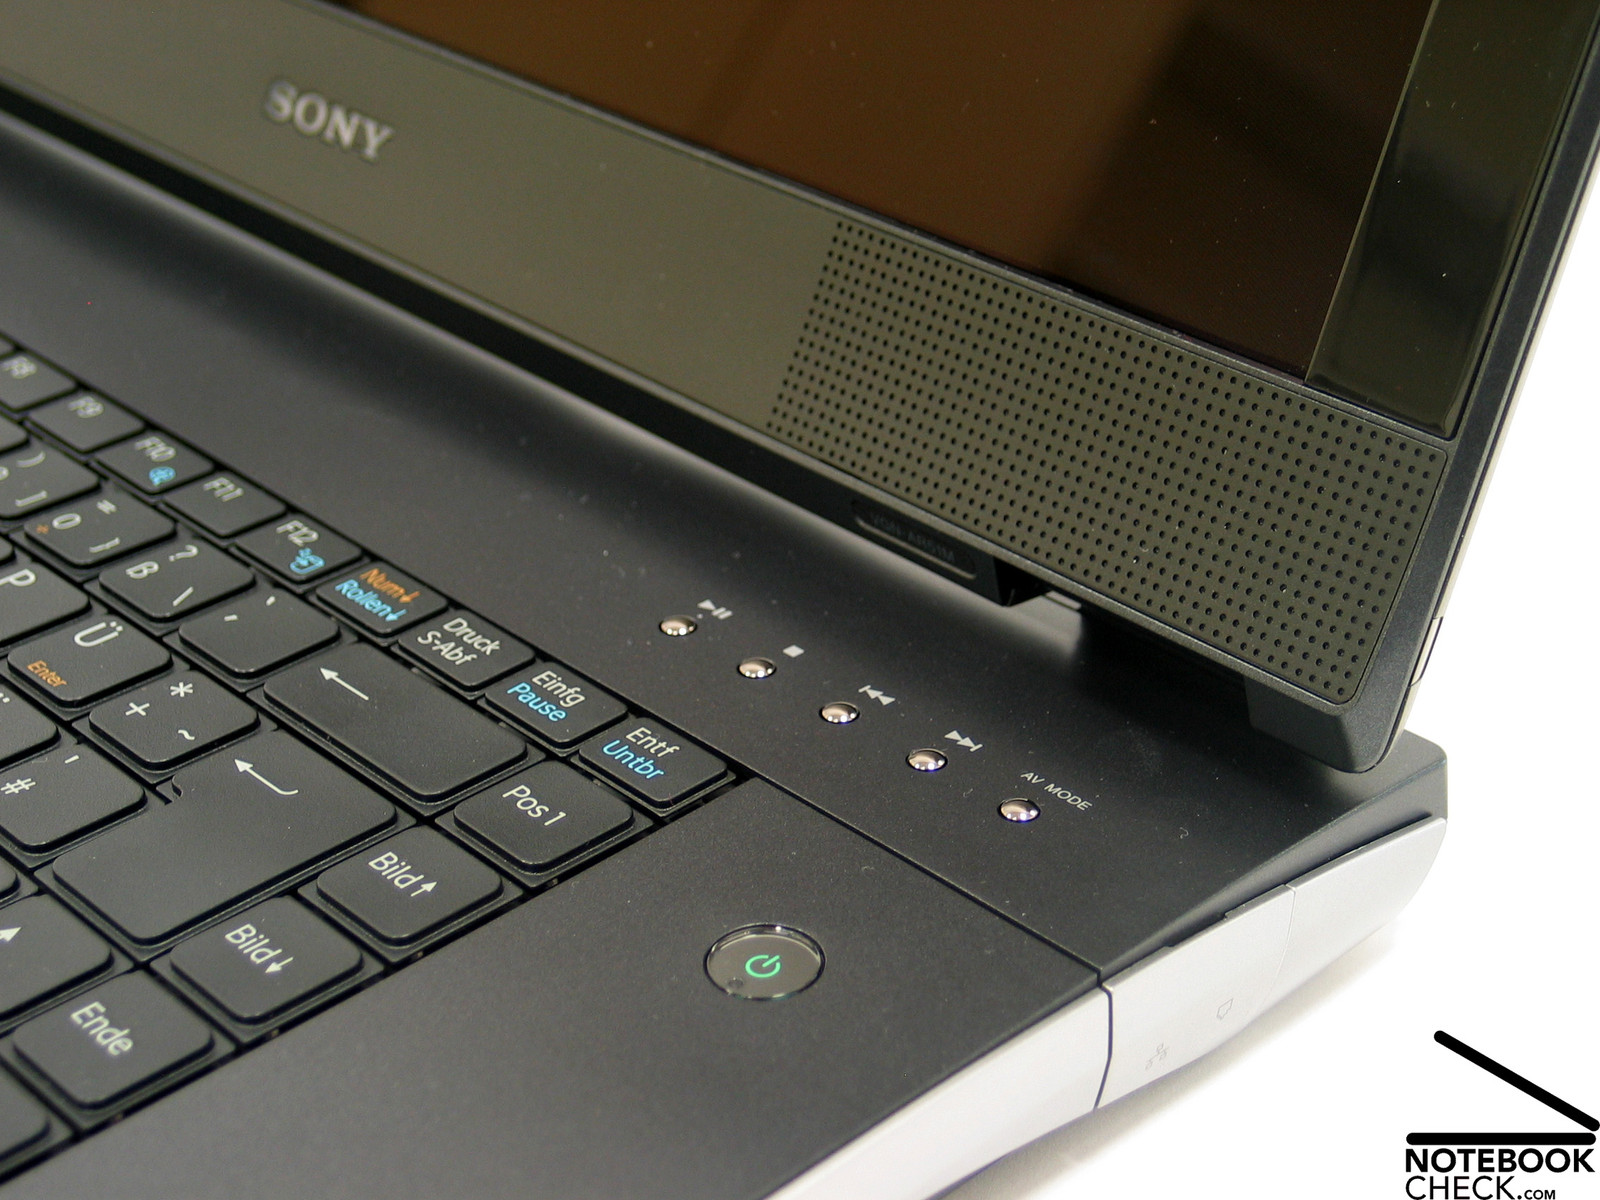 Free sony vaio pcg drivers download for windows 7